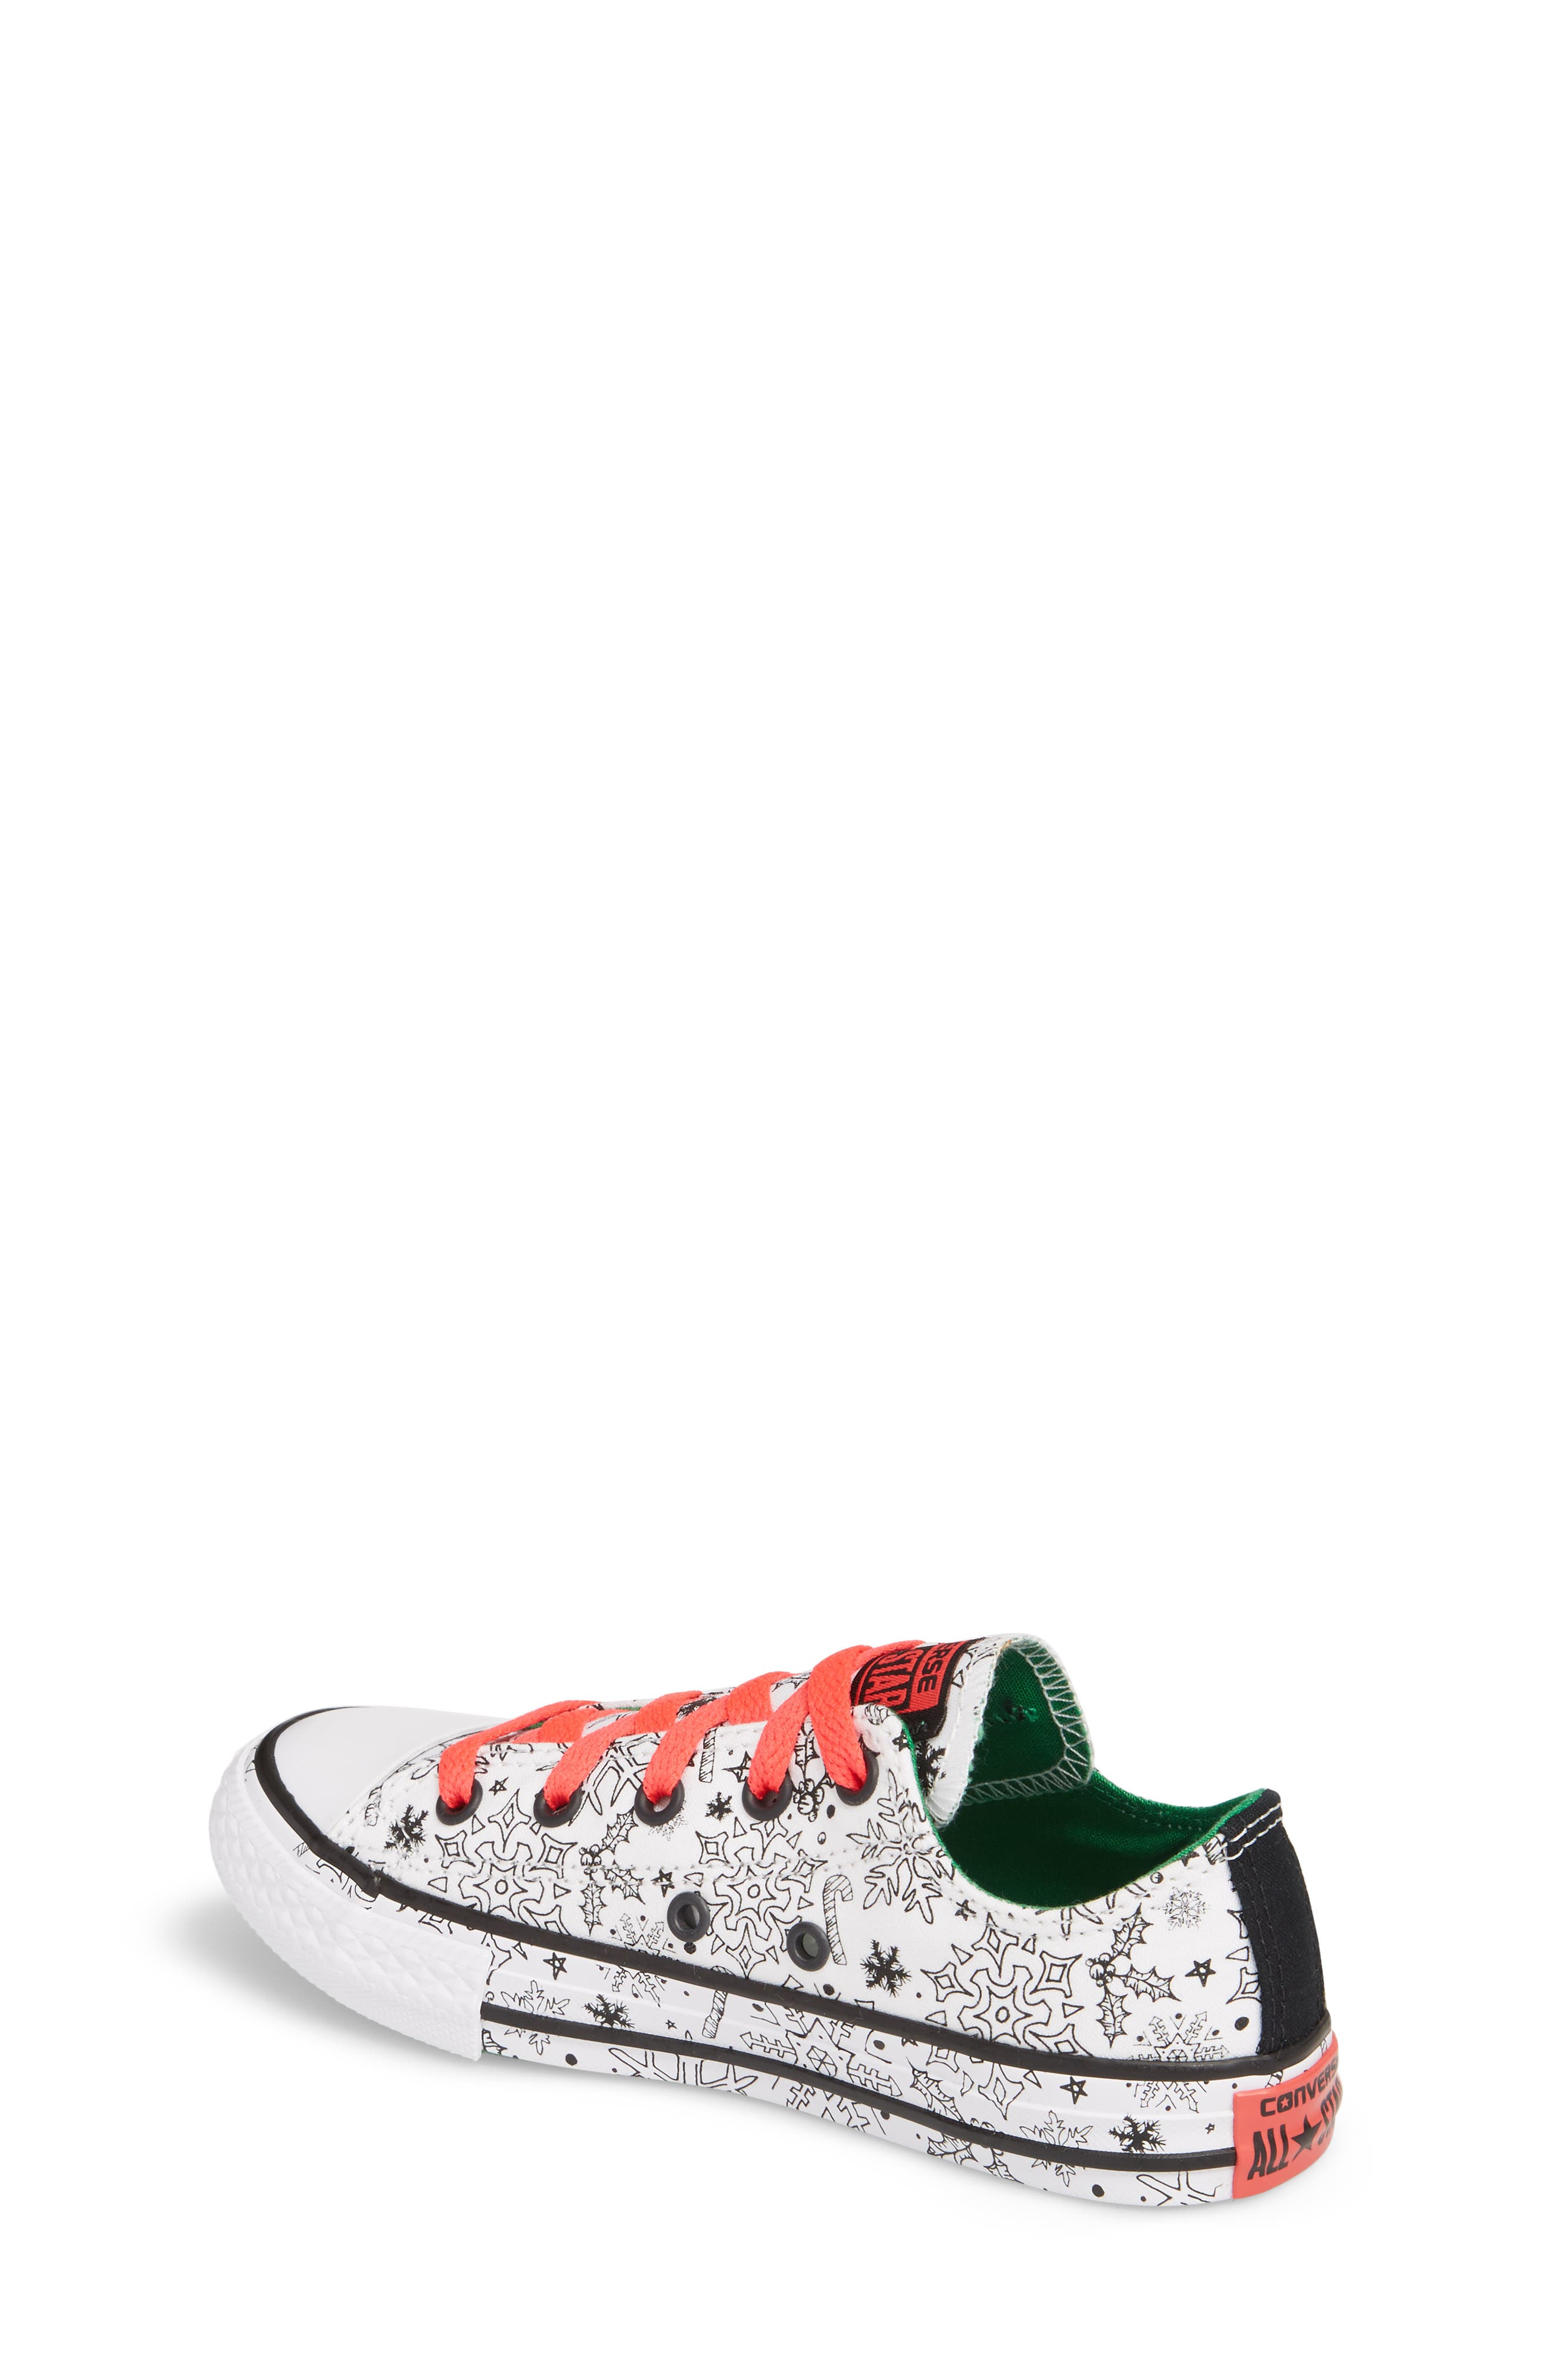 Alternate Image 2  - Converse Chuck Taylor® All Star® Christmas Coloring Book Ox Sneaker (Toddler, Little Kid & Big Kid)